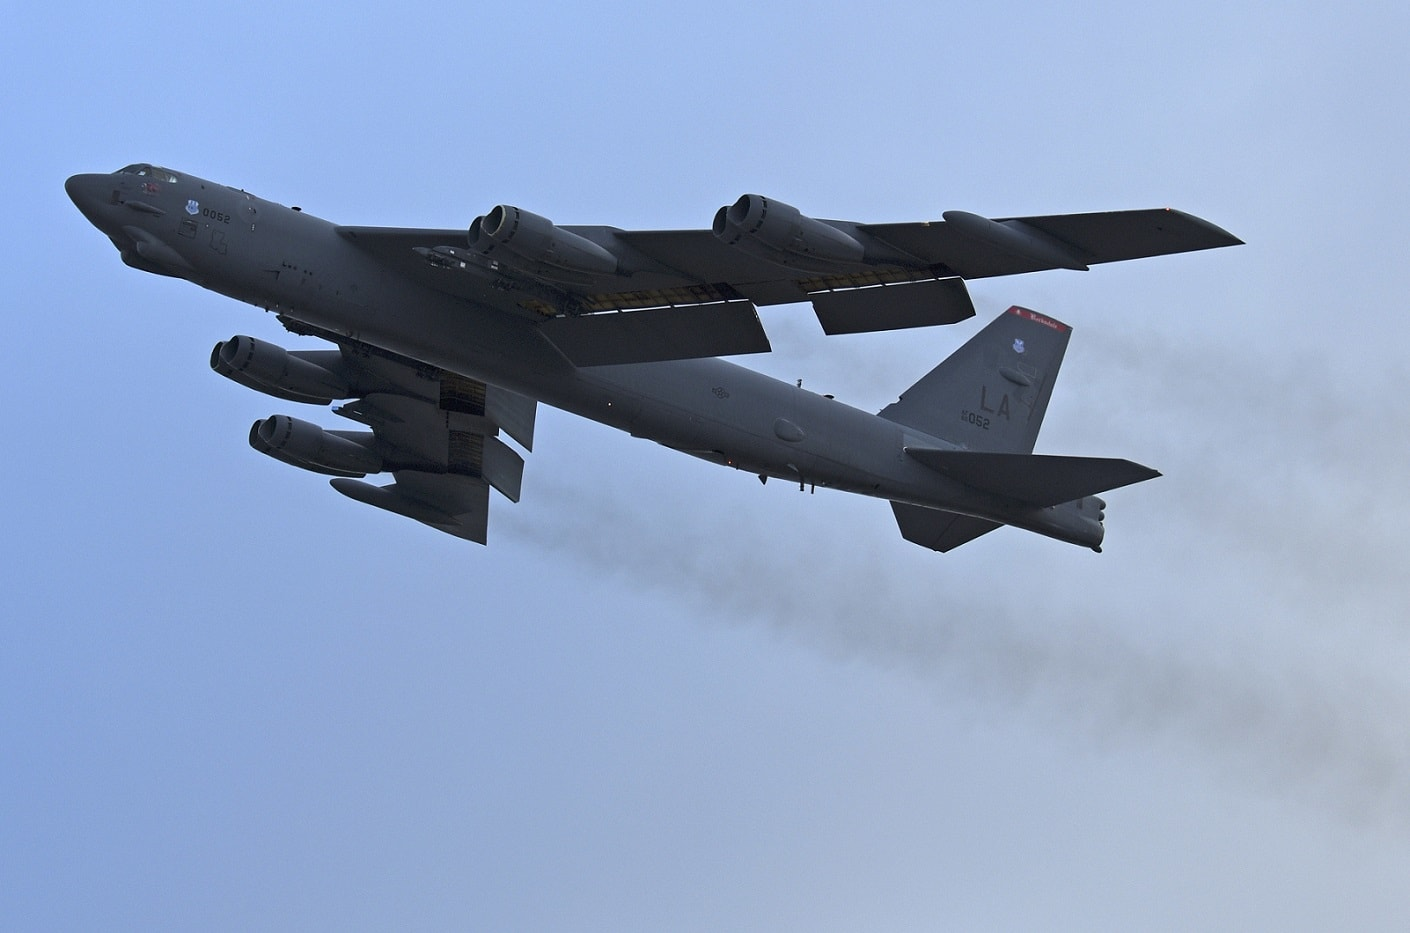 Russian Defense Ministry confirms US bomber flies 93 miles from